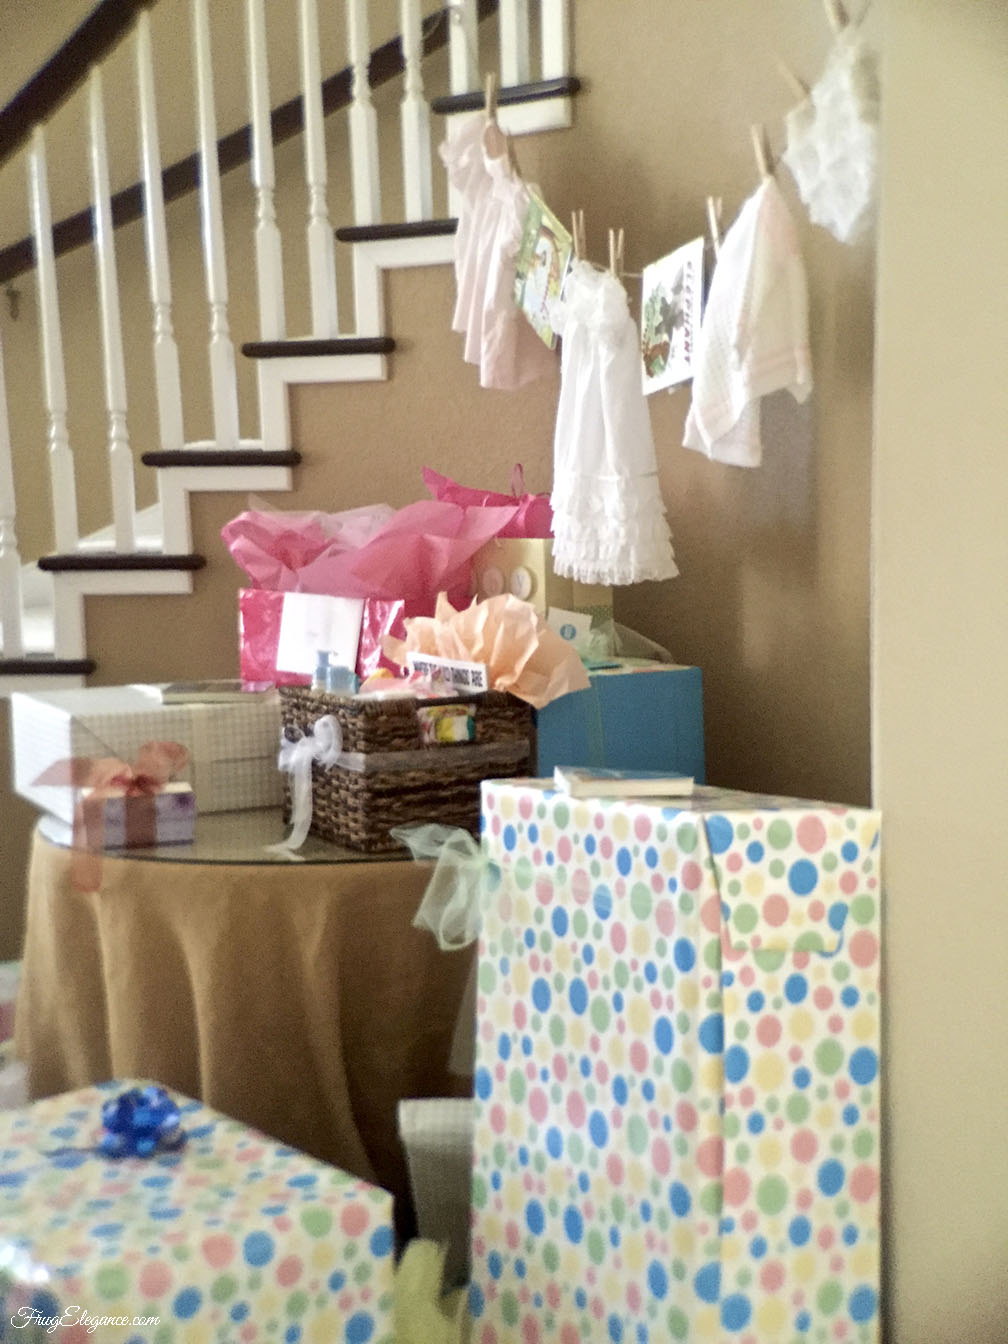 Easy Banner With A Very Personal Touch Hangs Above The Baby Shower Gifts  Table. Using Clothespins To Hang Very Special Baby Clothes U0026 A Couple Story  Books.